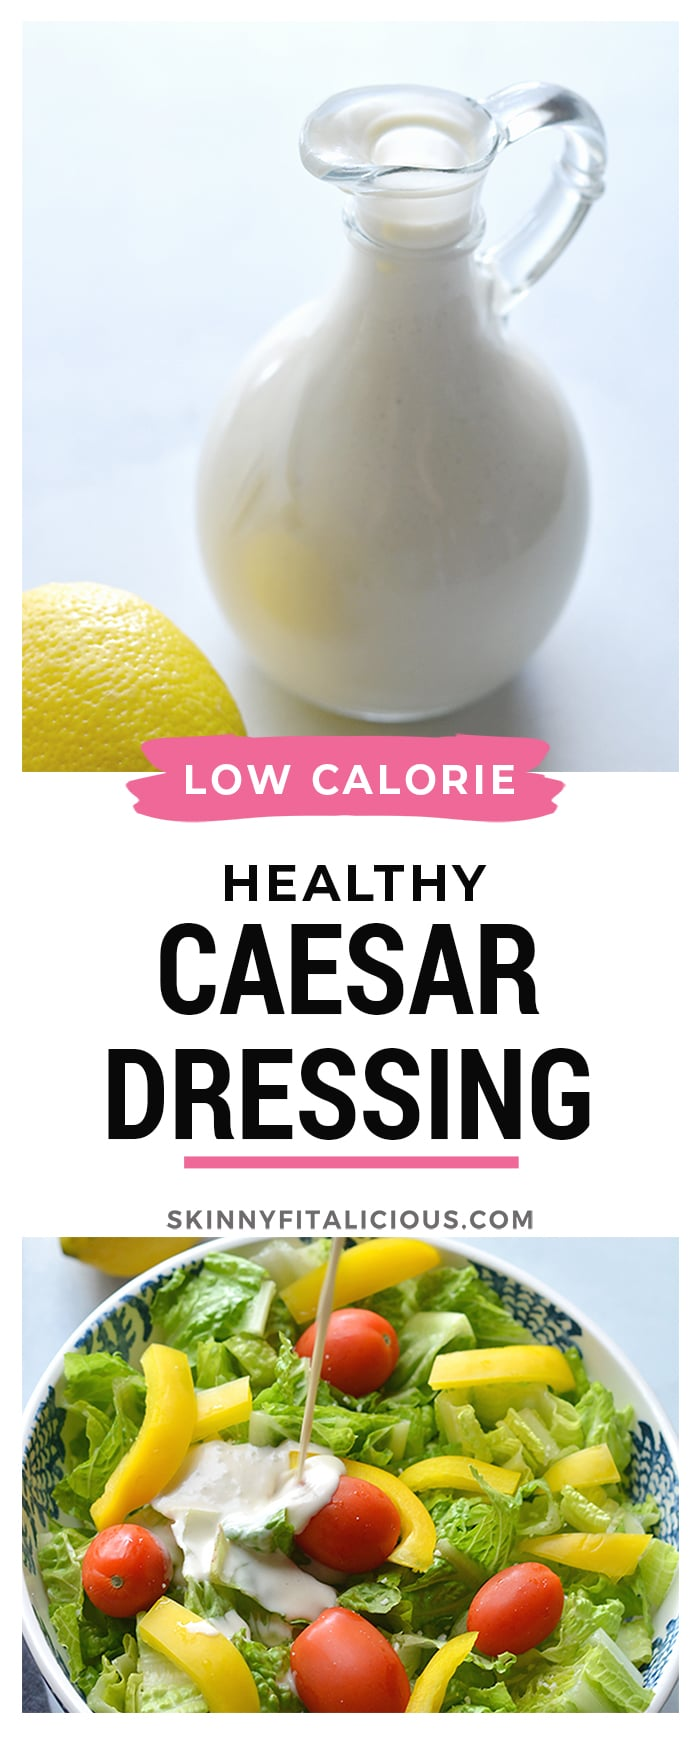 Healthy Greek Yogurt Caesar Dressing! A classic Caesar dressing that's made lighter, gluten free and higher in protein to dress your salads!